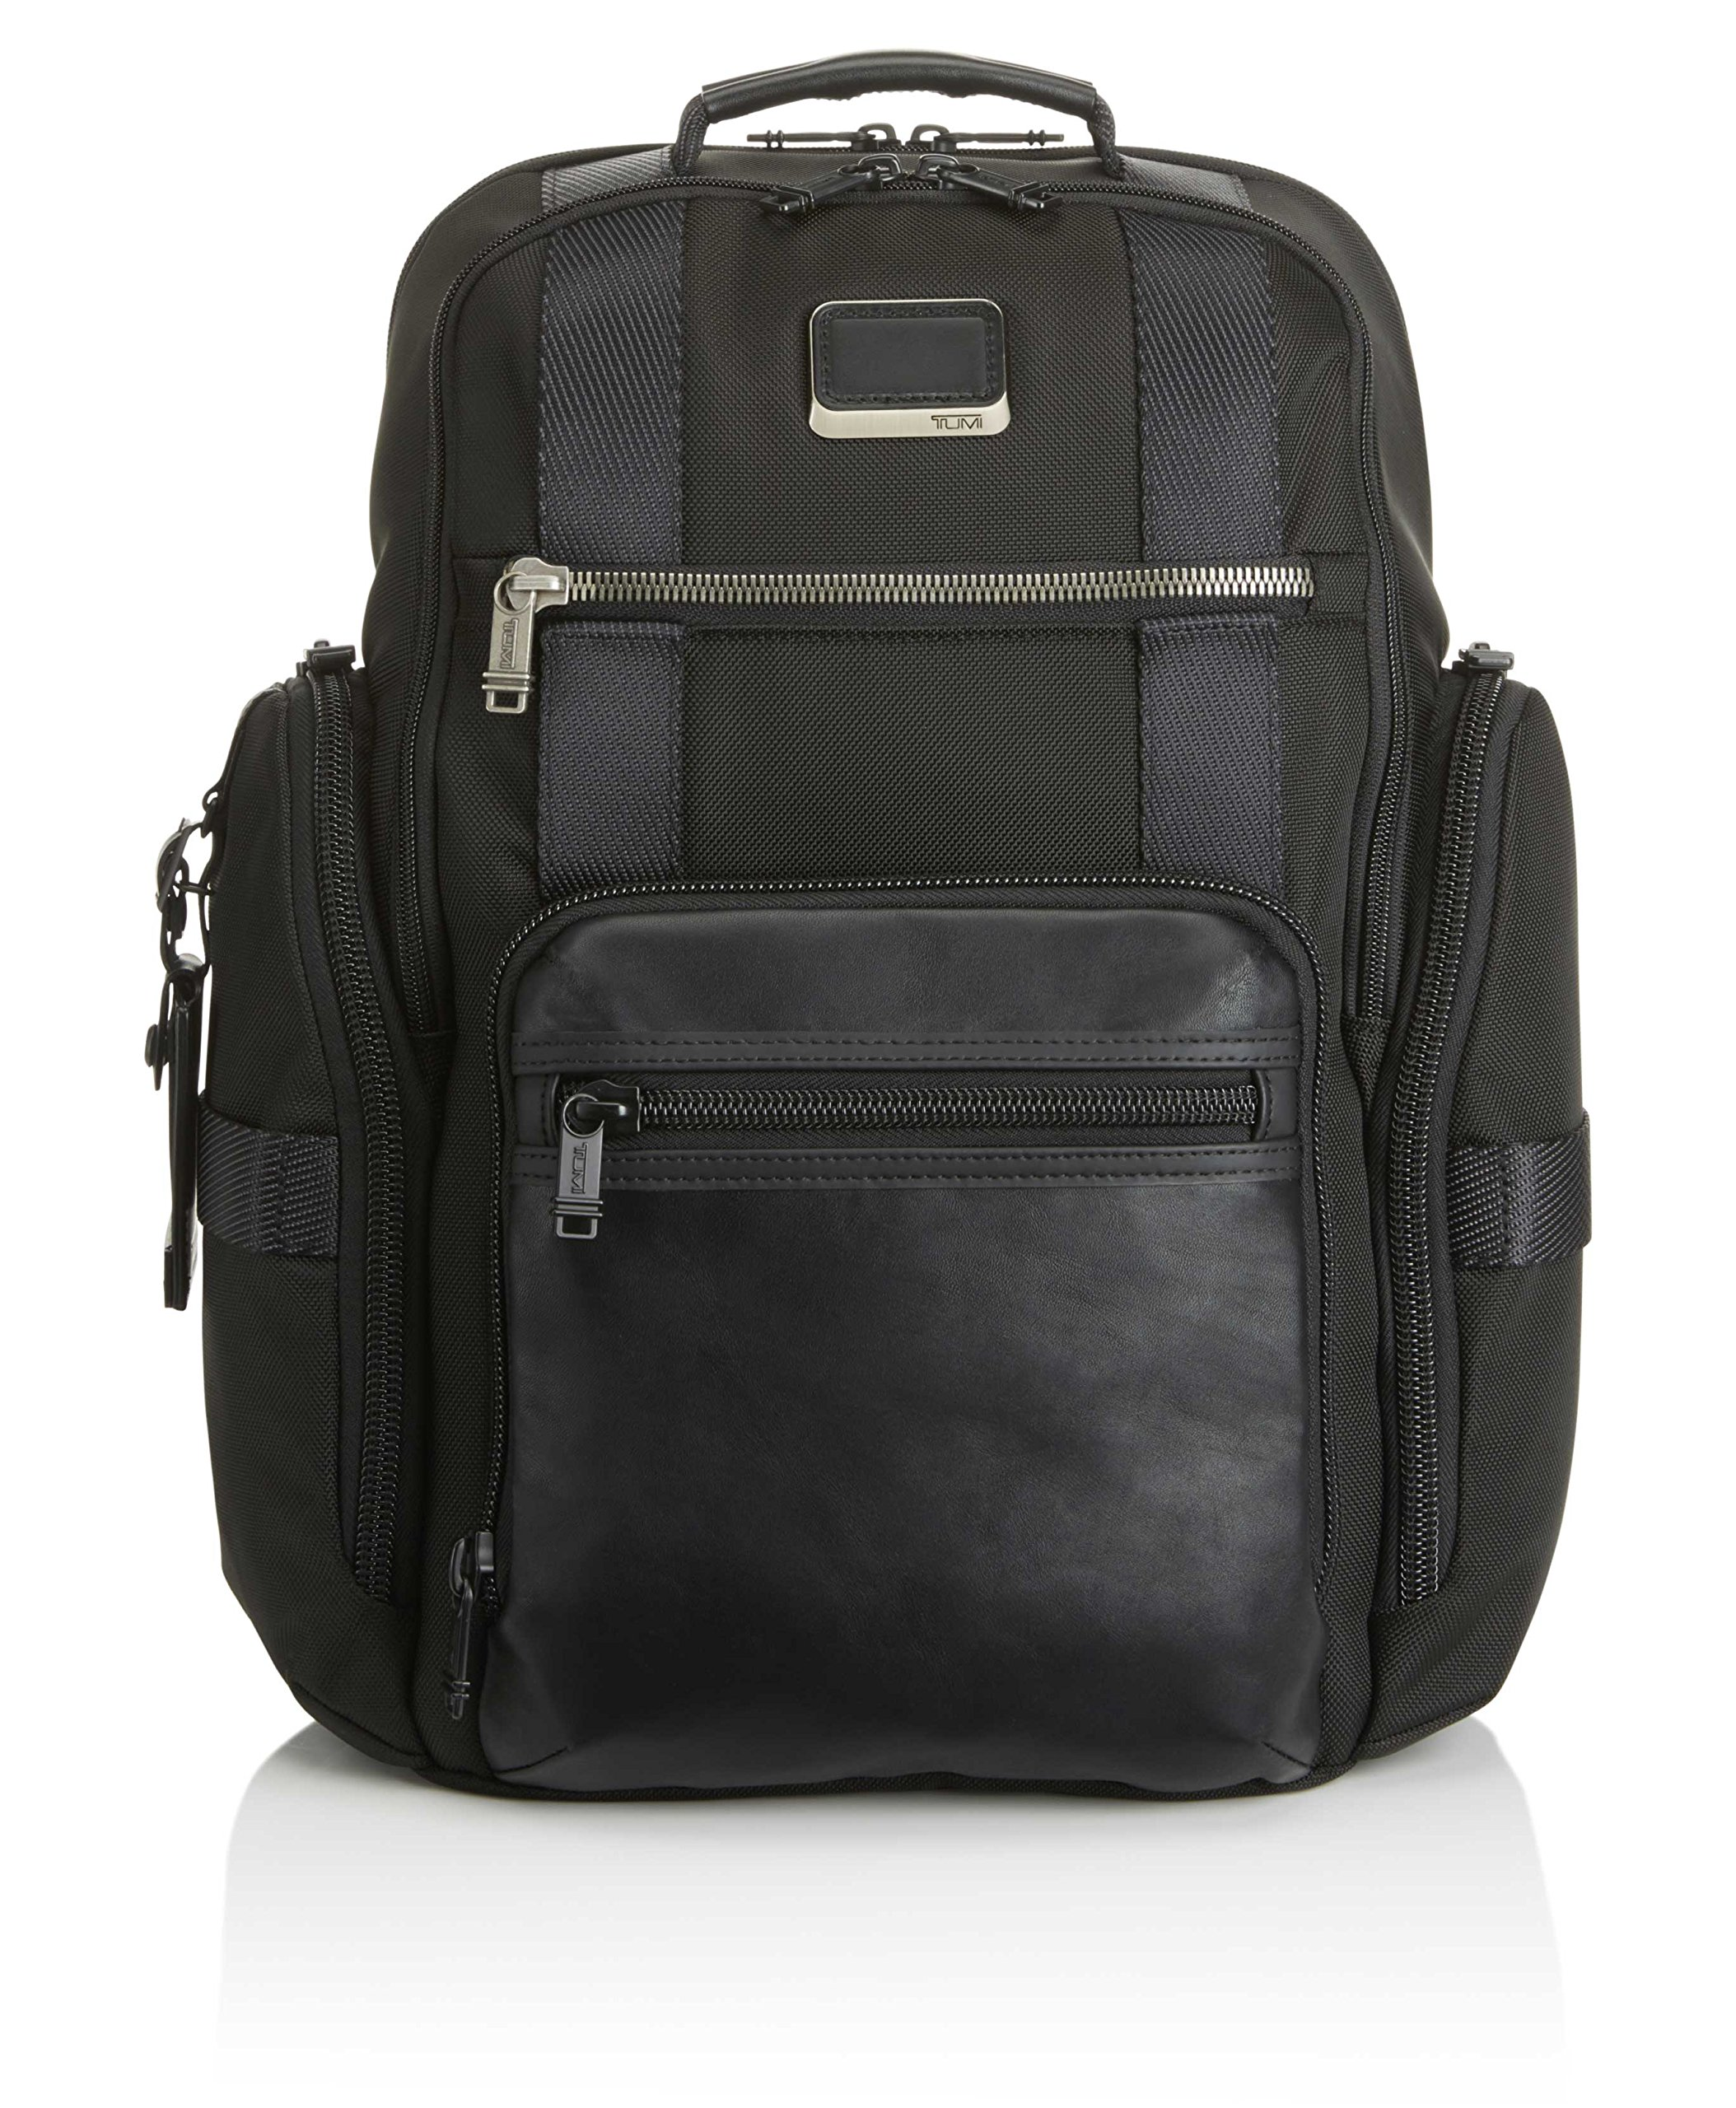 Tumi Men's Alpha Bravo Sheppard Deluxe Brief Pack Business Backpack, Black, One Size